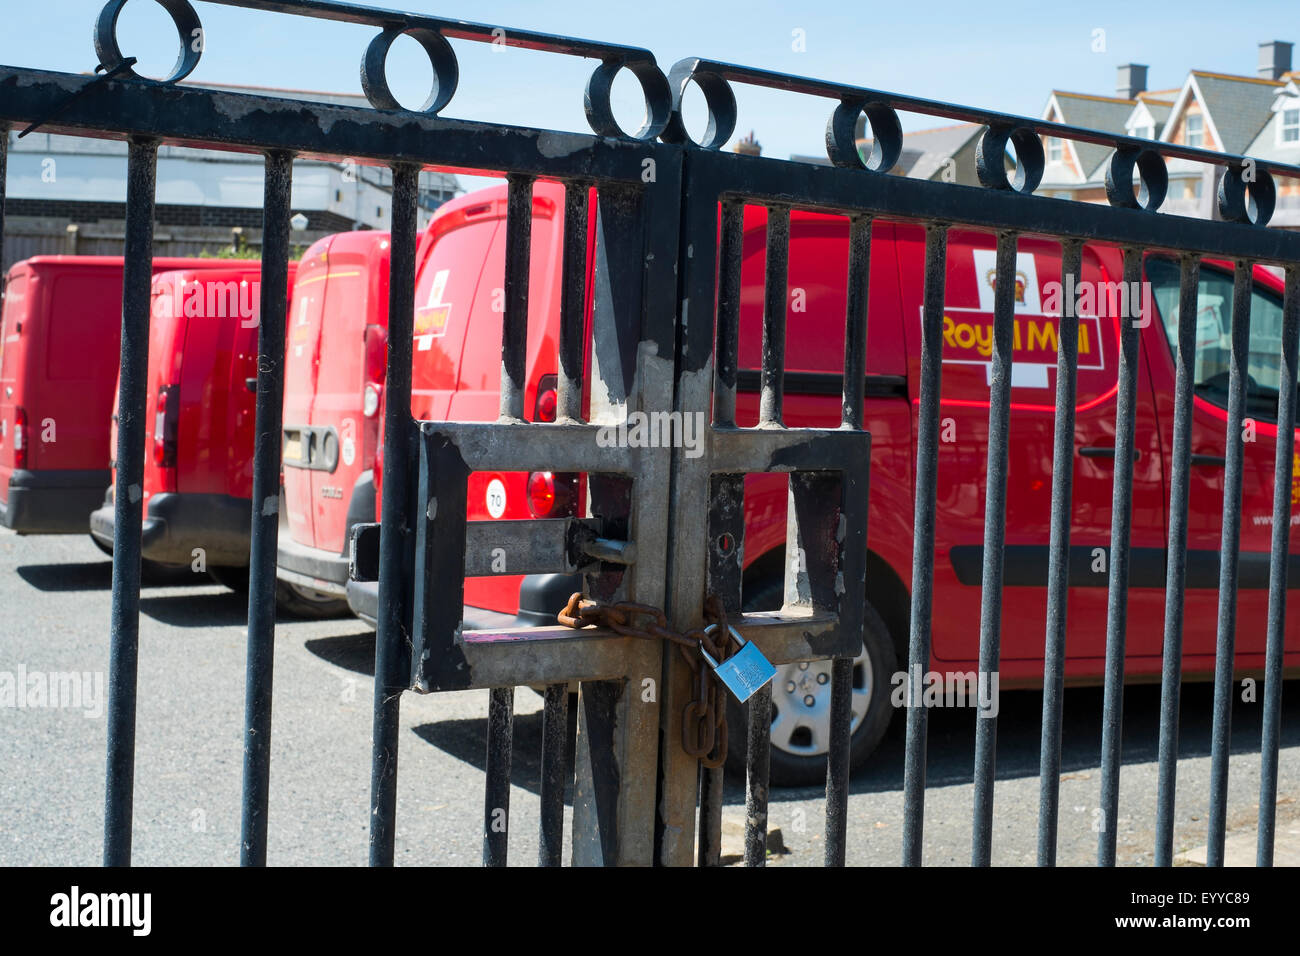 Royal Mail delivery vans locked in delivery office car park at Bude, Cornwall, England, UK - Stock Image